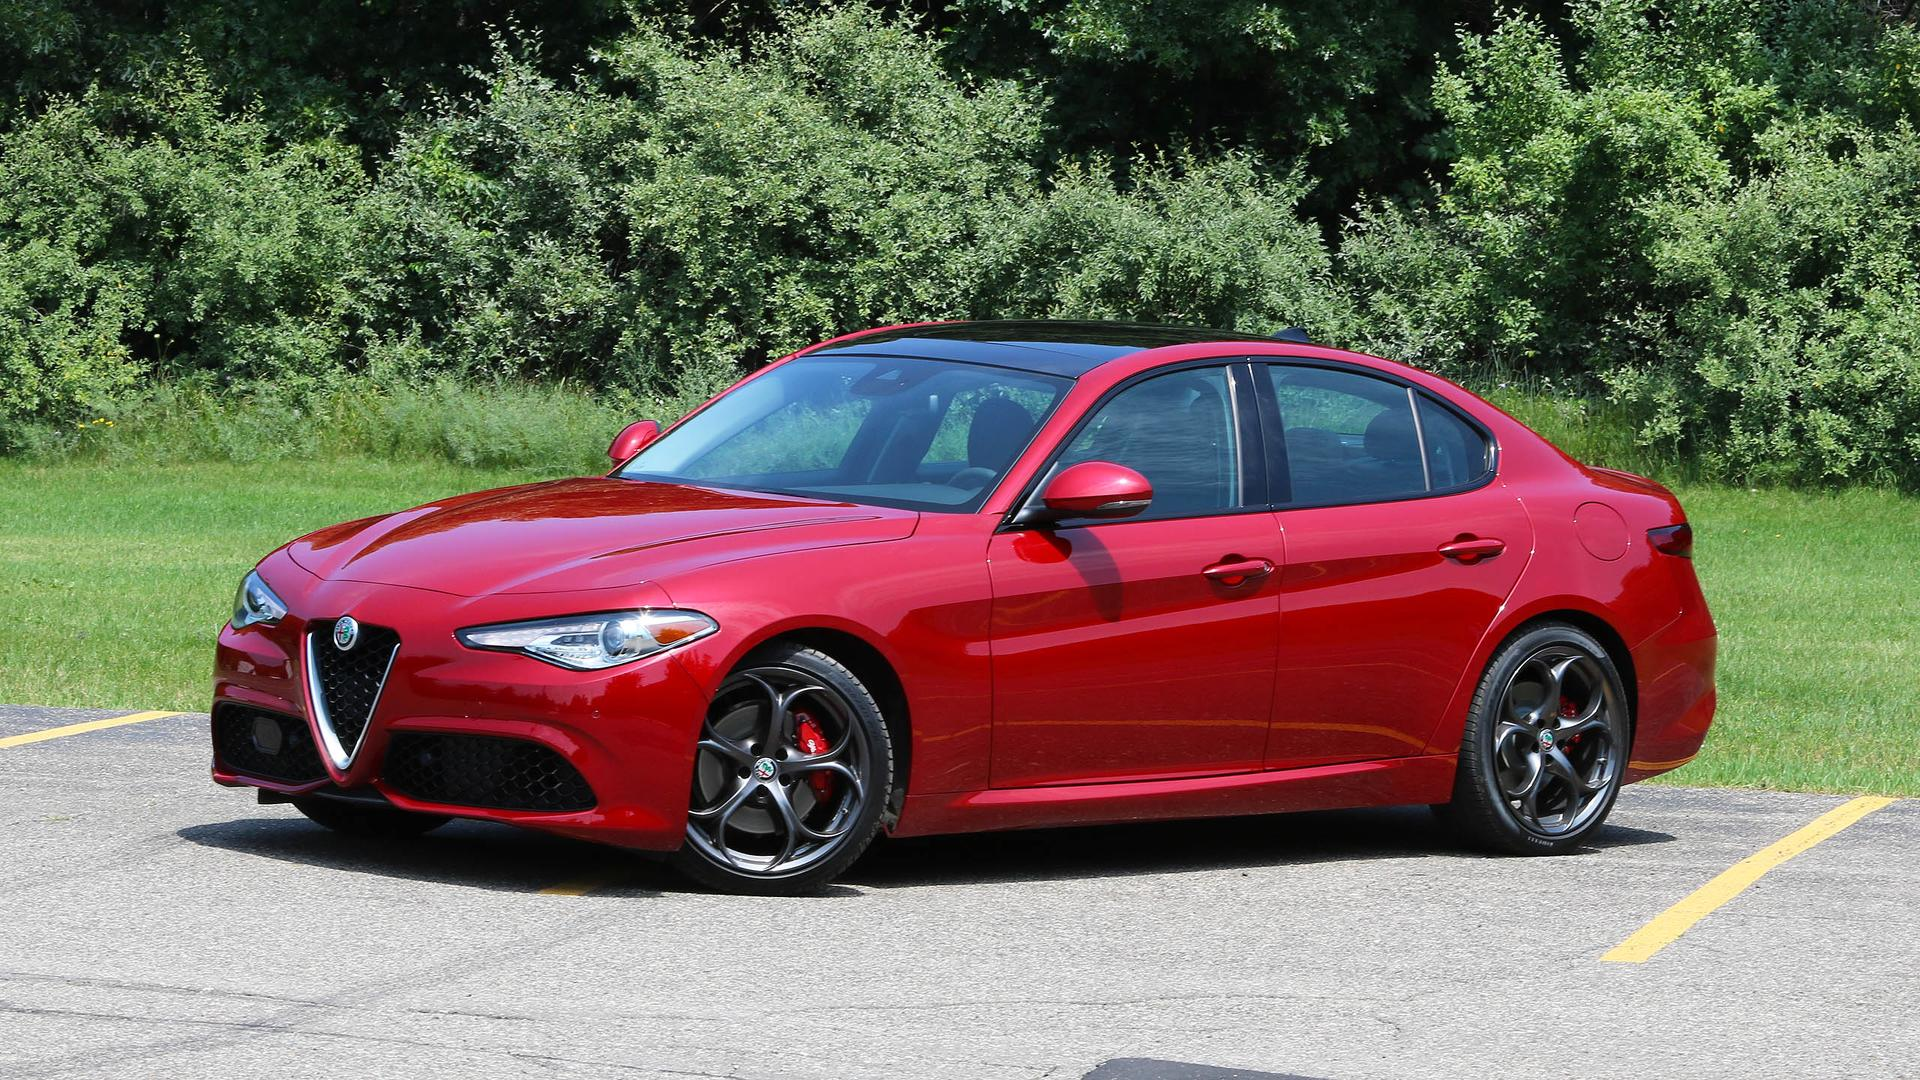 Alfa Romeo Giulia >> Alfa Romeo Giulia News And Reviews Motor1 Com